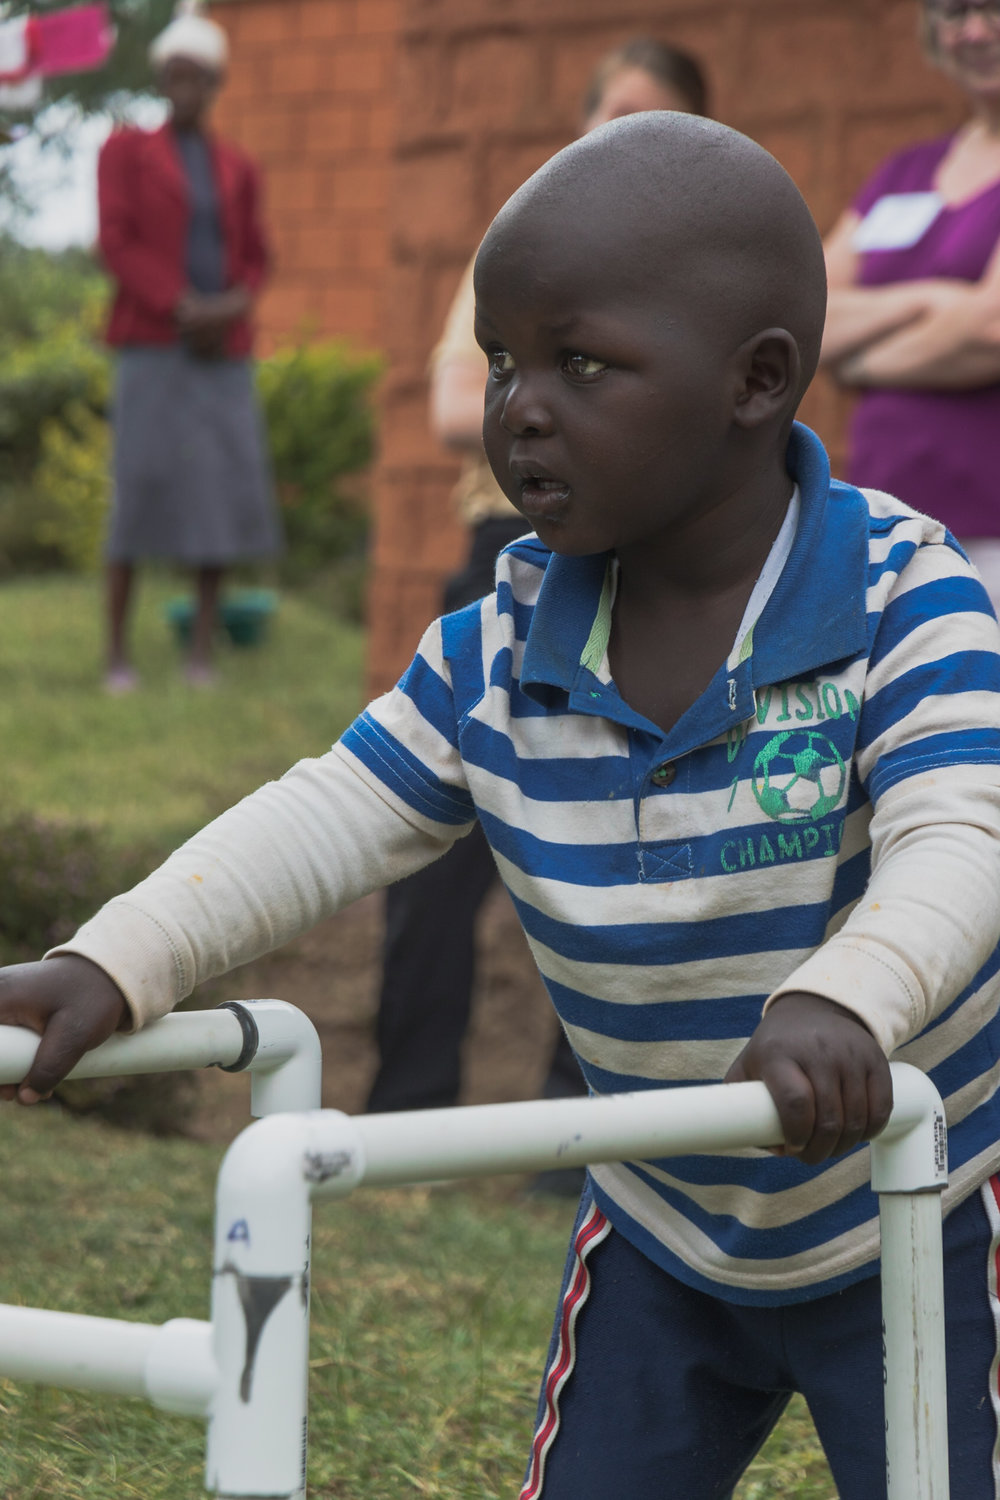 young Kenyan boy receiving physical therapy